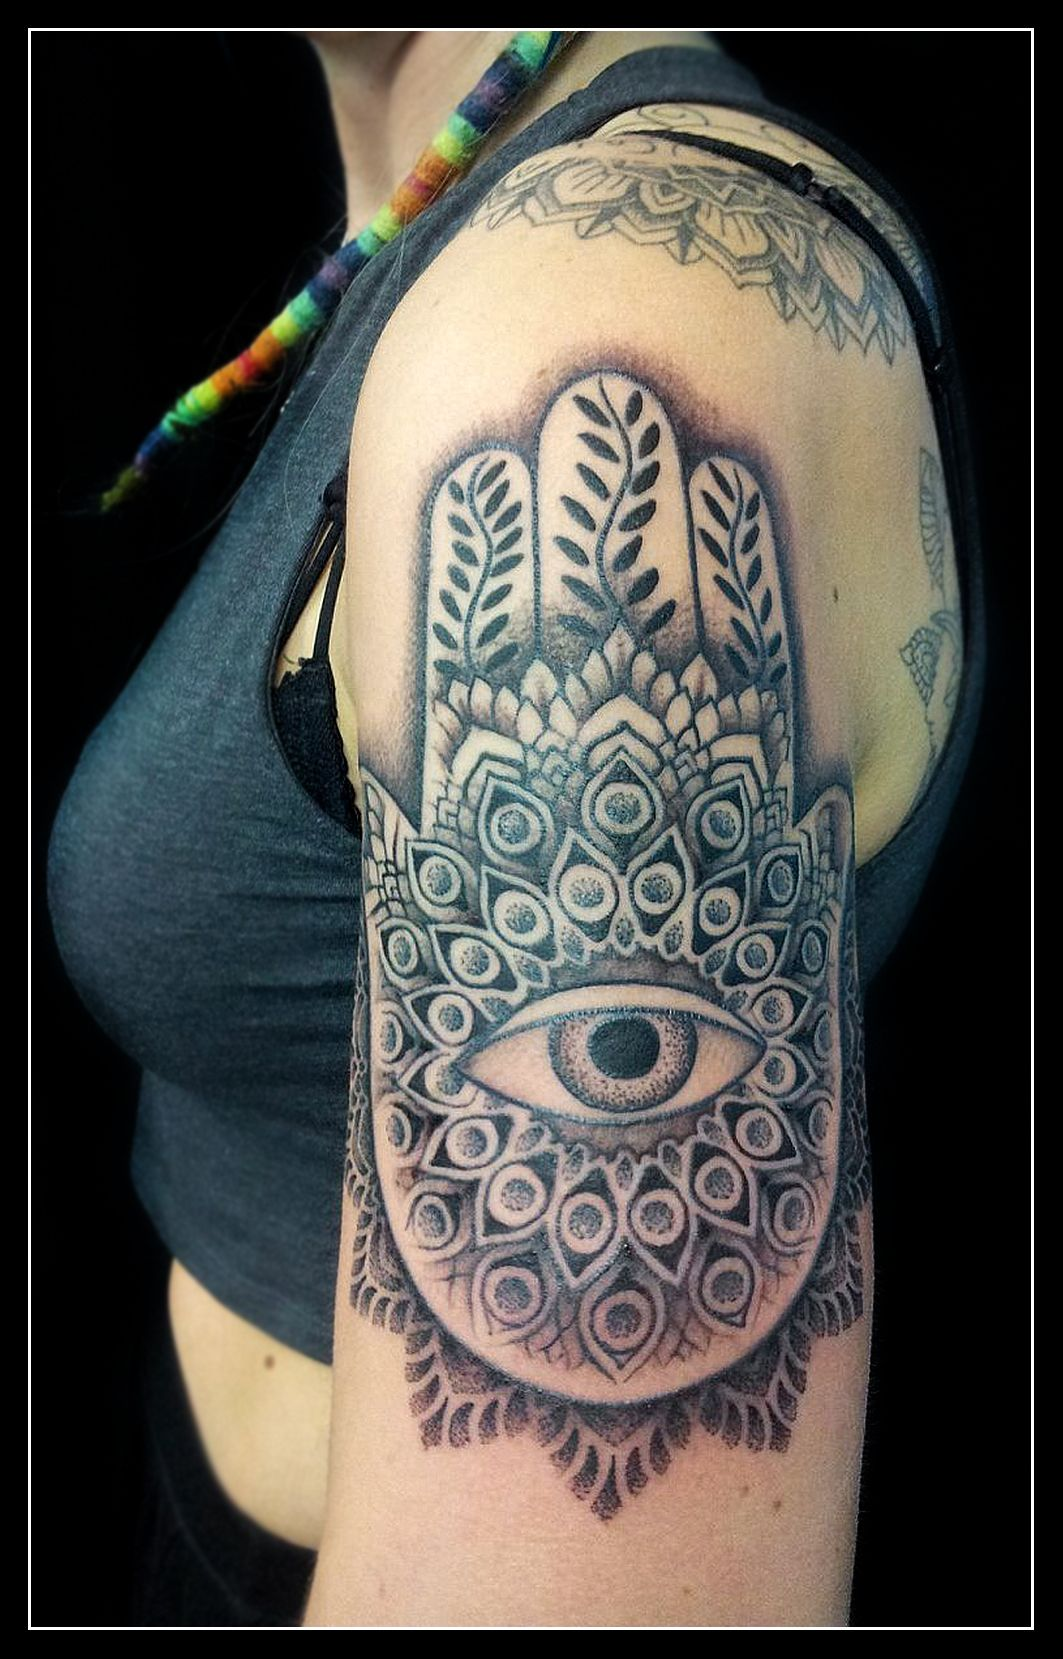 Adorned Tattoo Alex Hennerley Tattoos Pinterest Tattoo Ideas And Designs